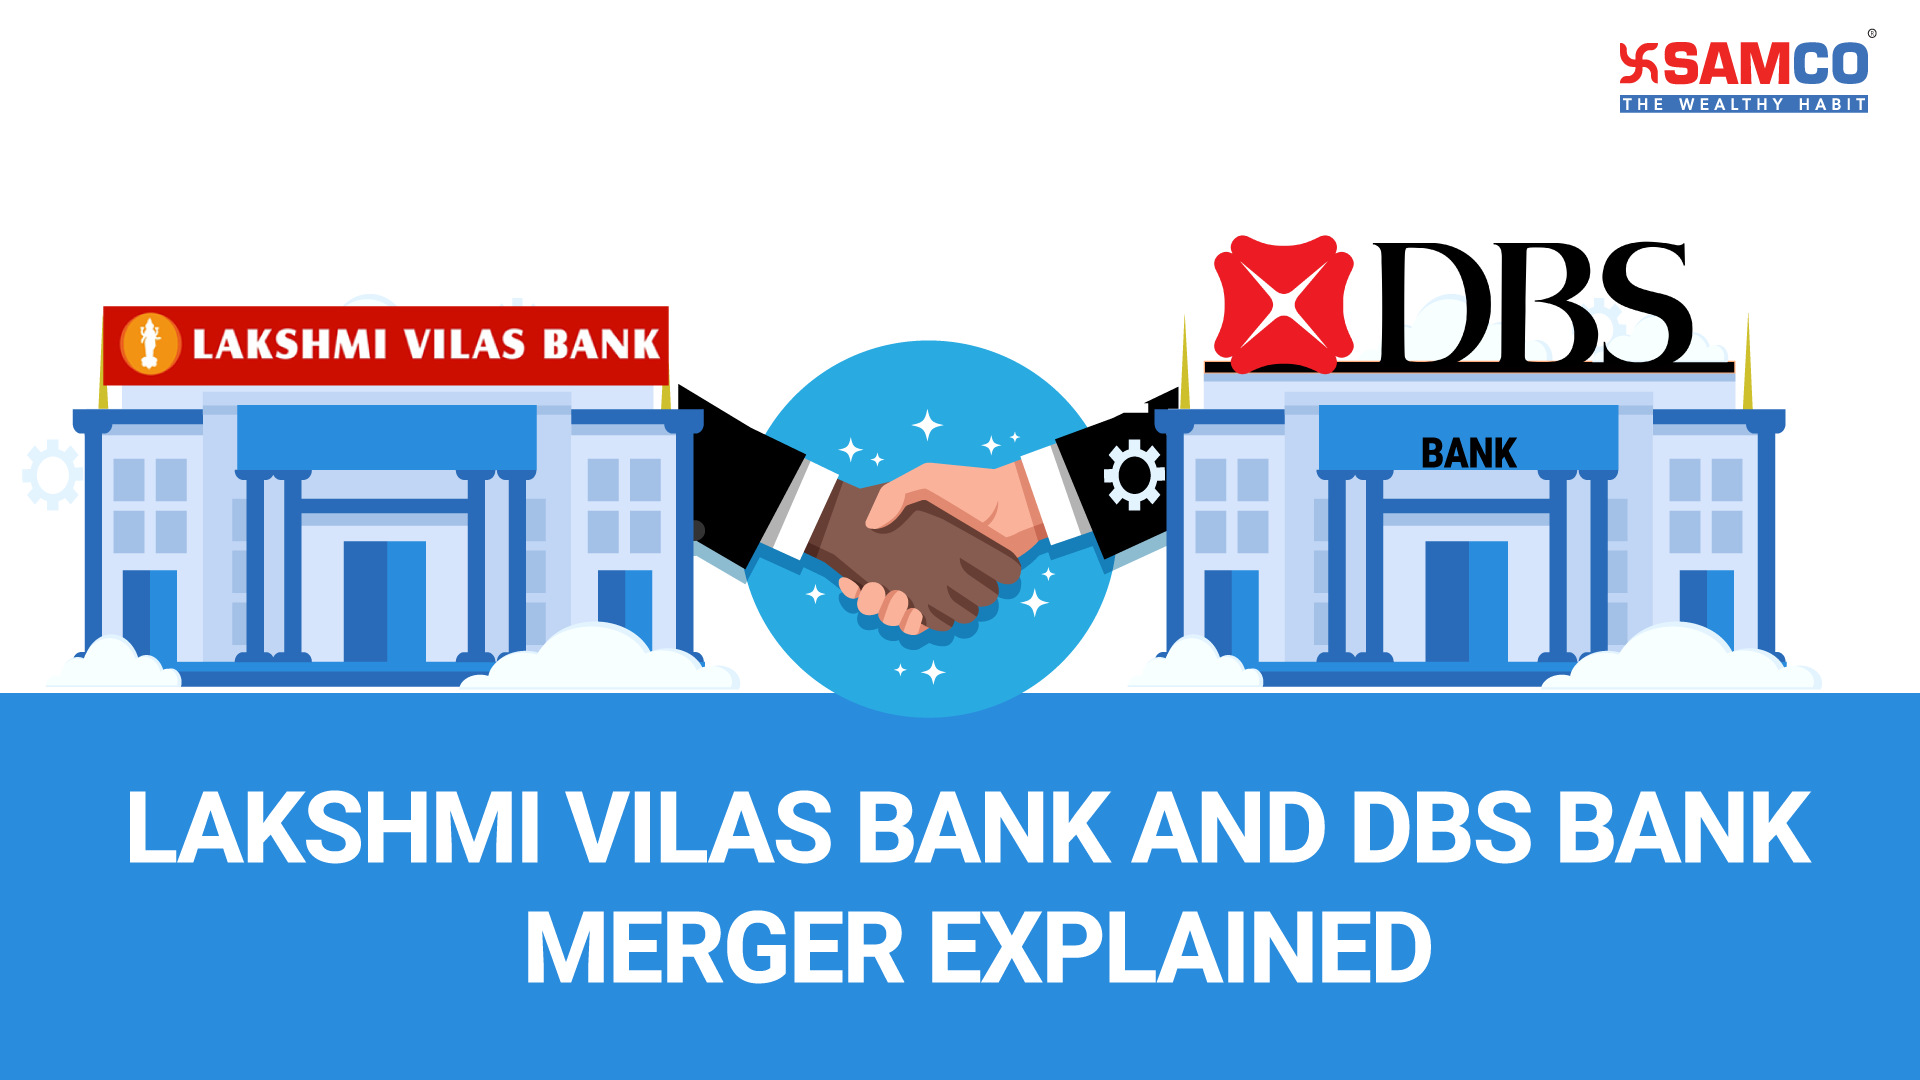 Lakshmi Vilas Bank and DBS Bank Merger Explained